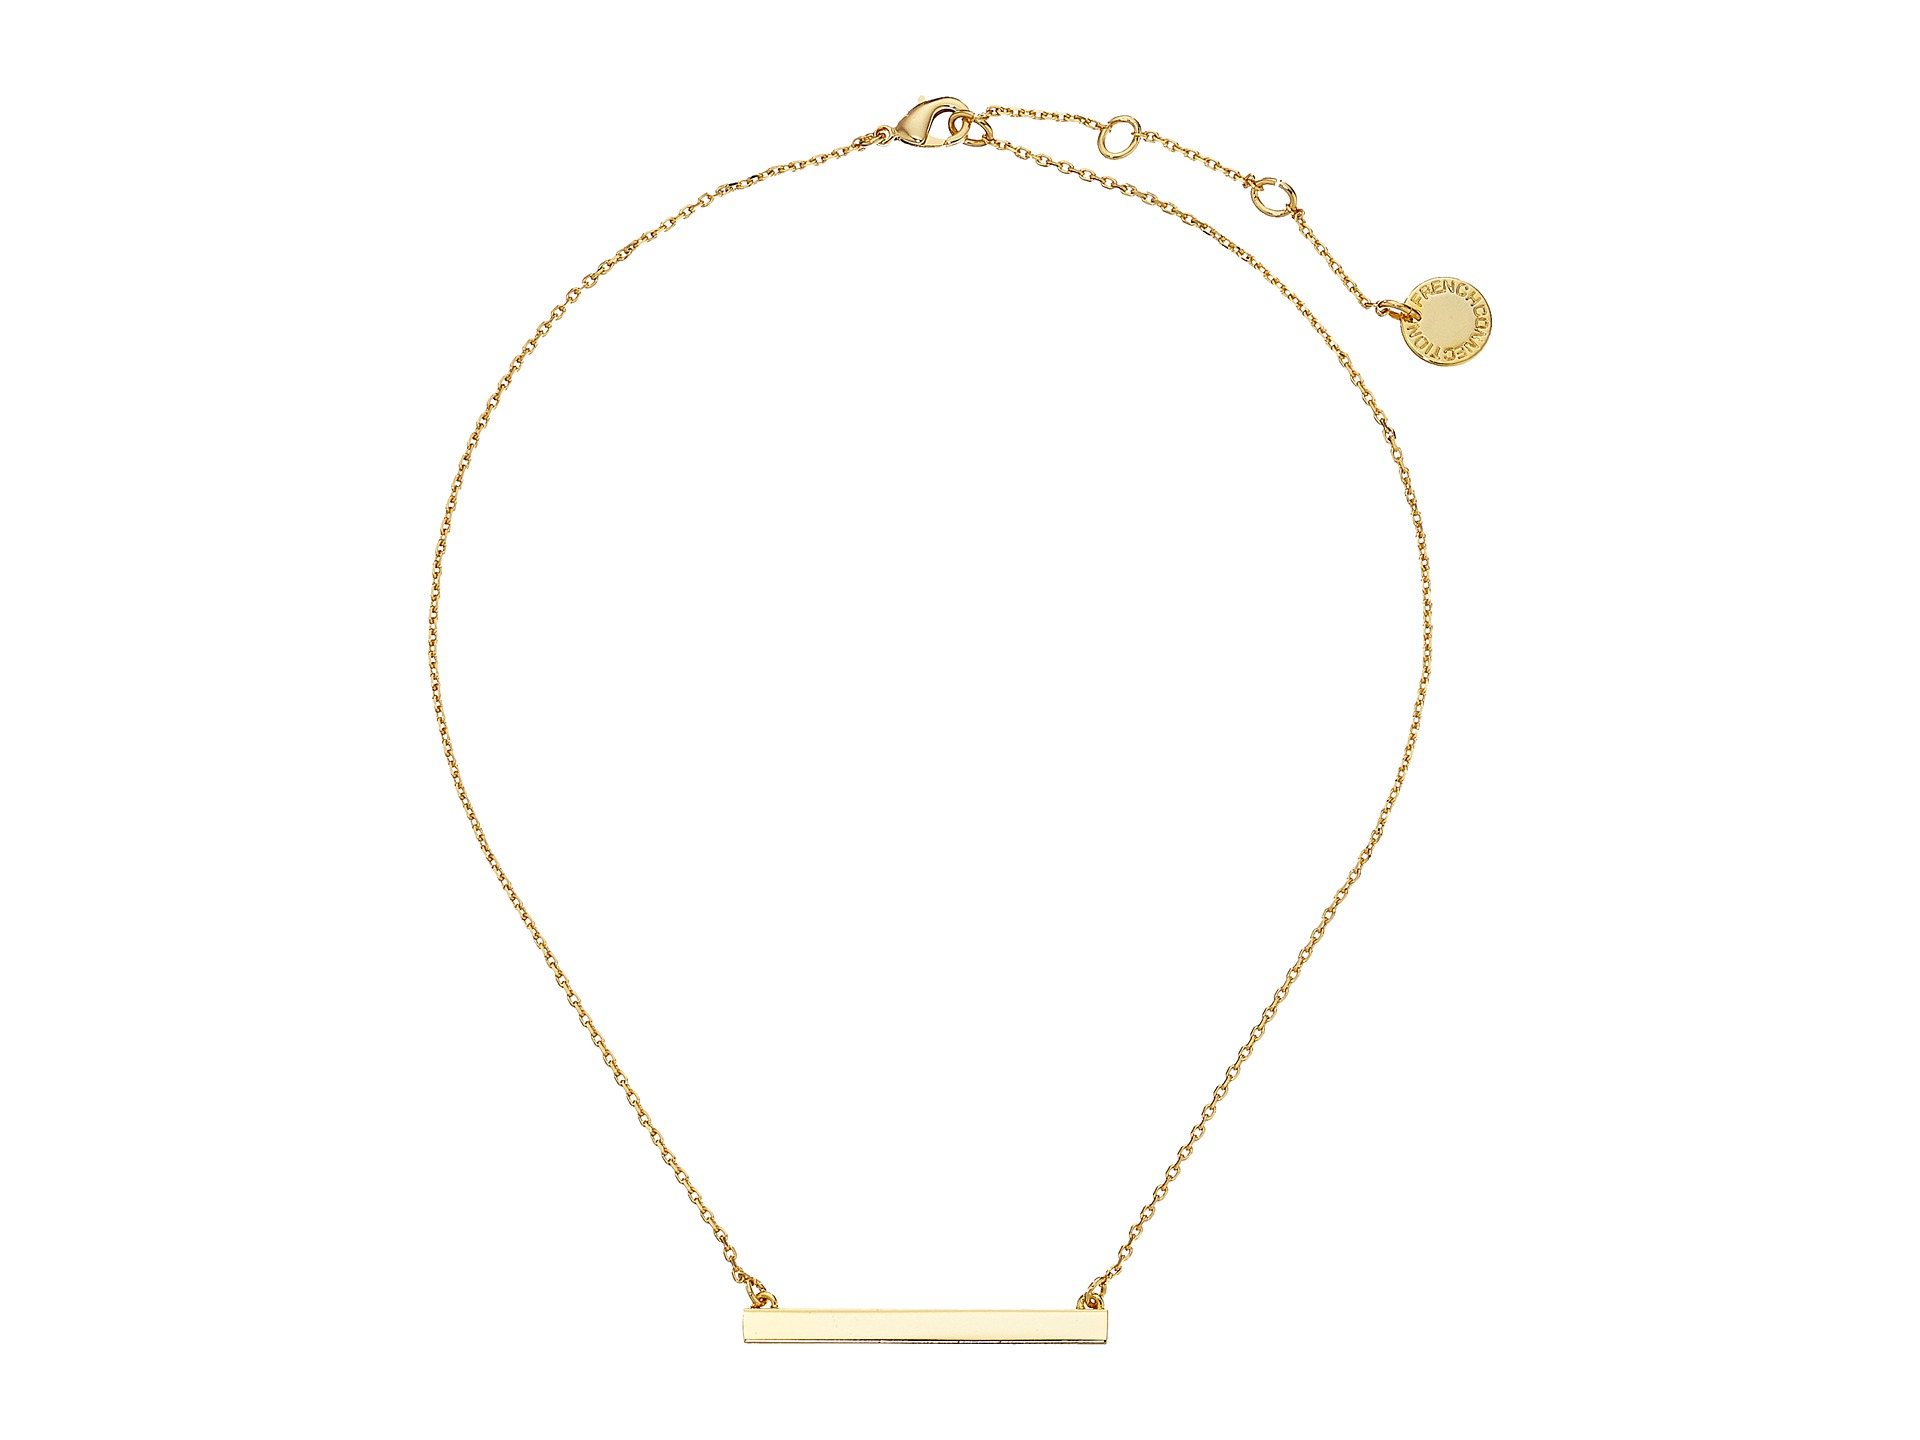 french connection horizontal bar pendant necklace in gold. Black Bedroom Furniture Sets. Home Design Ideas